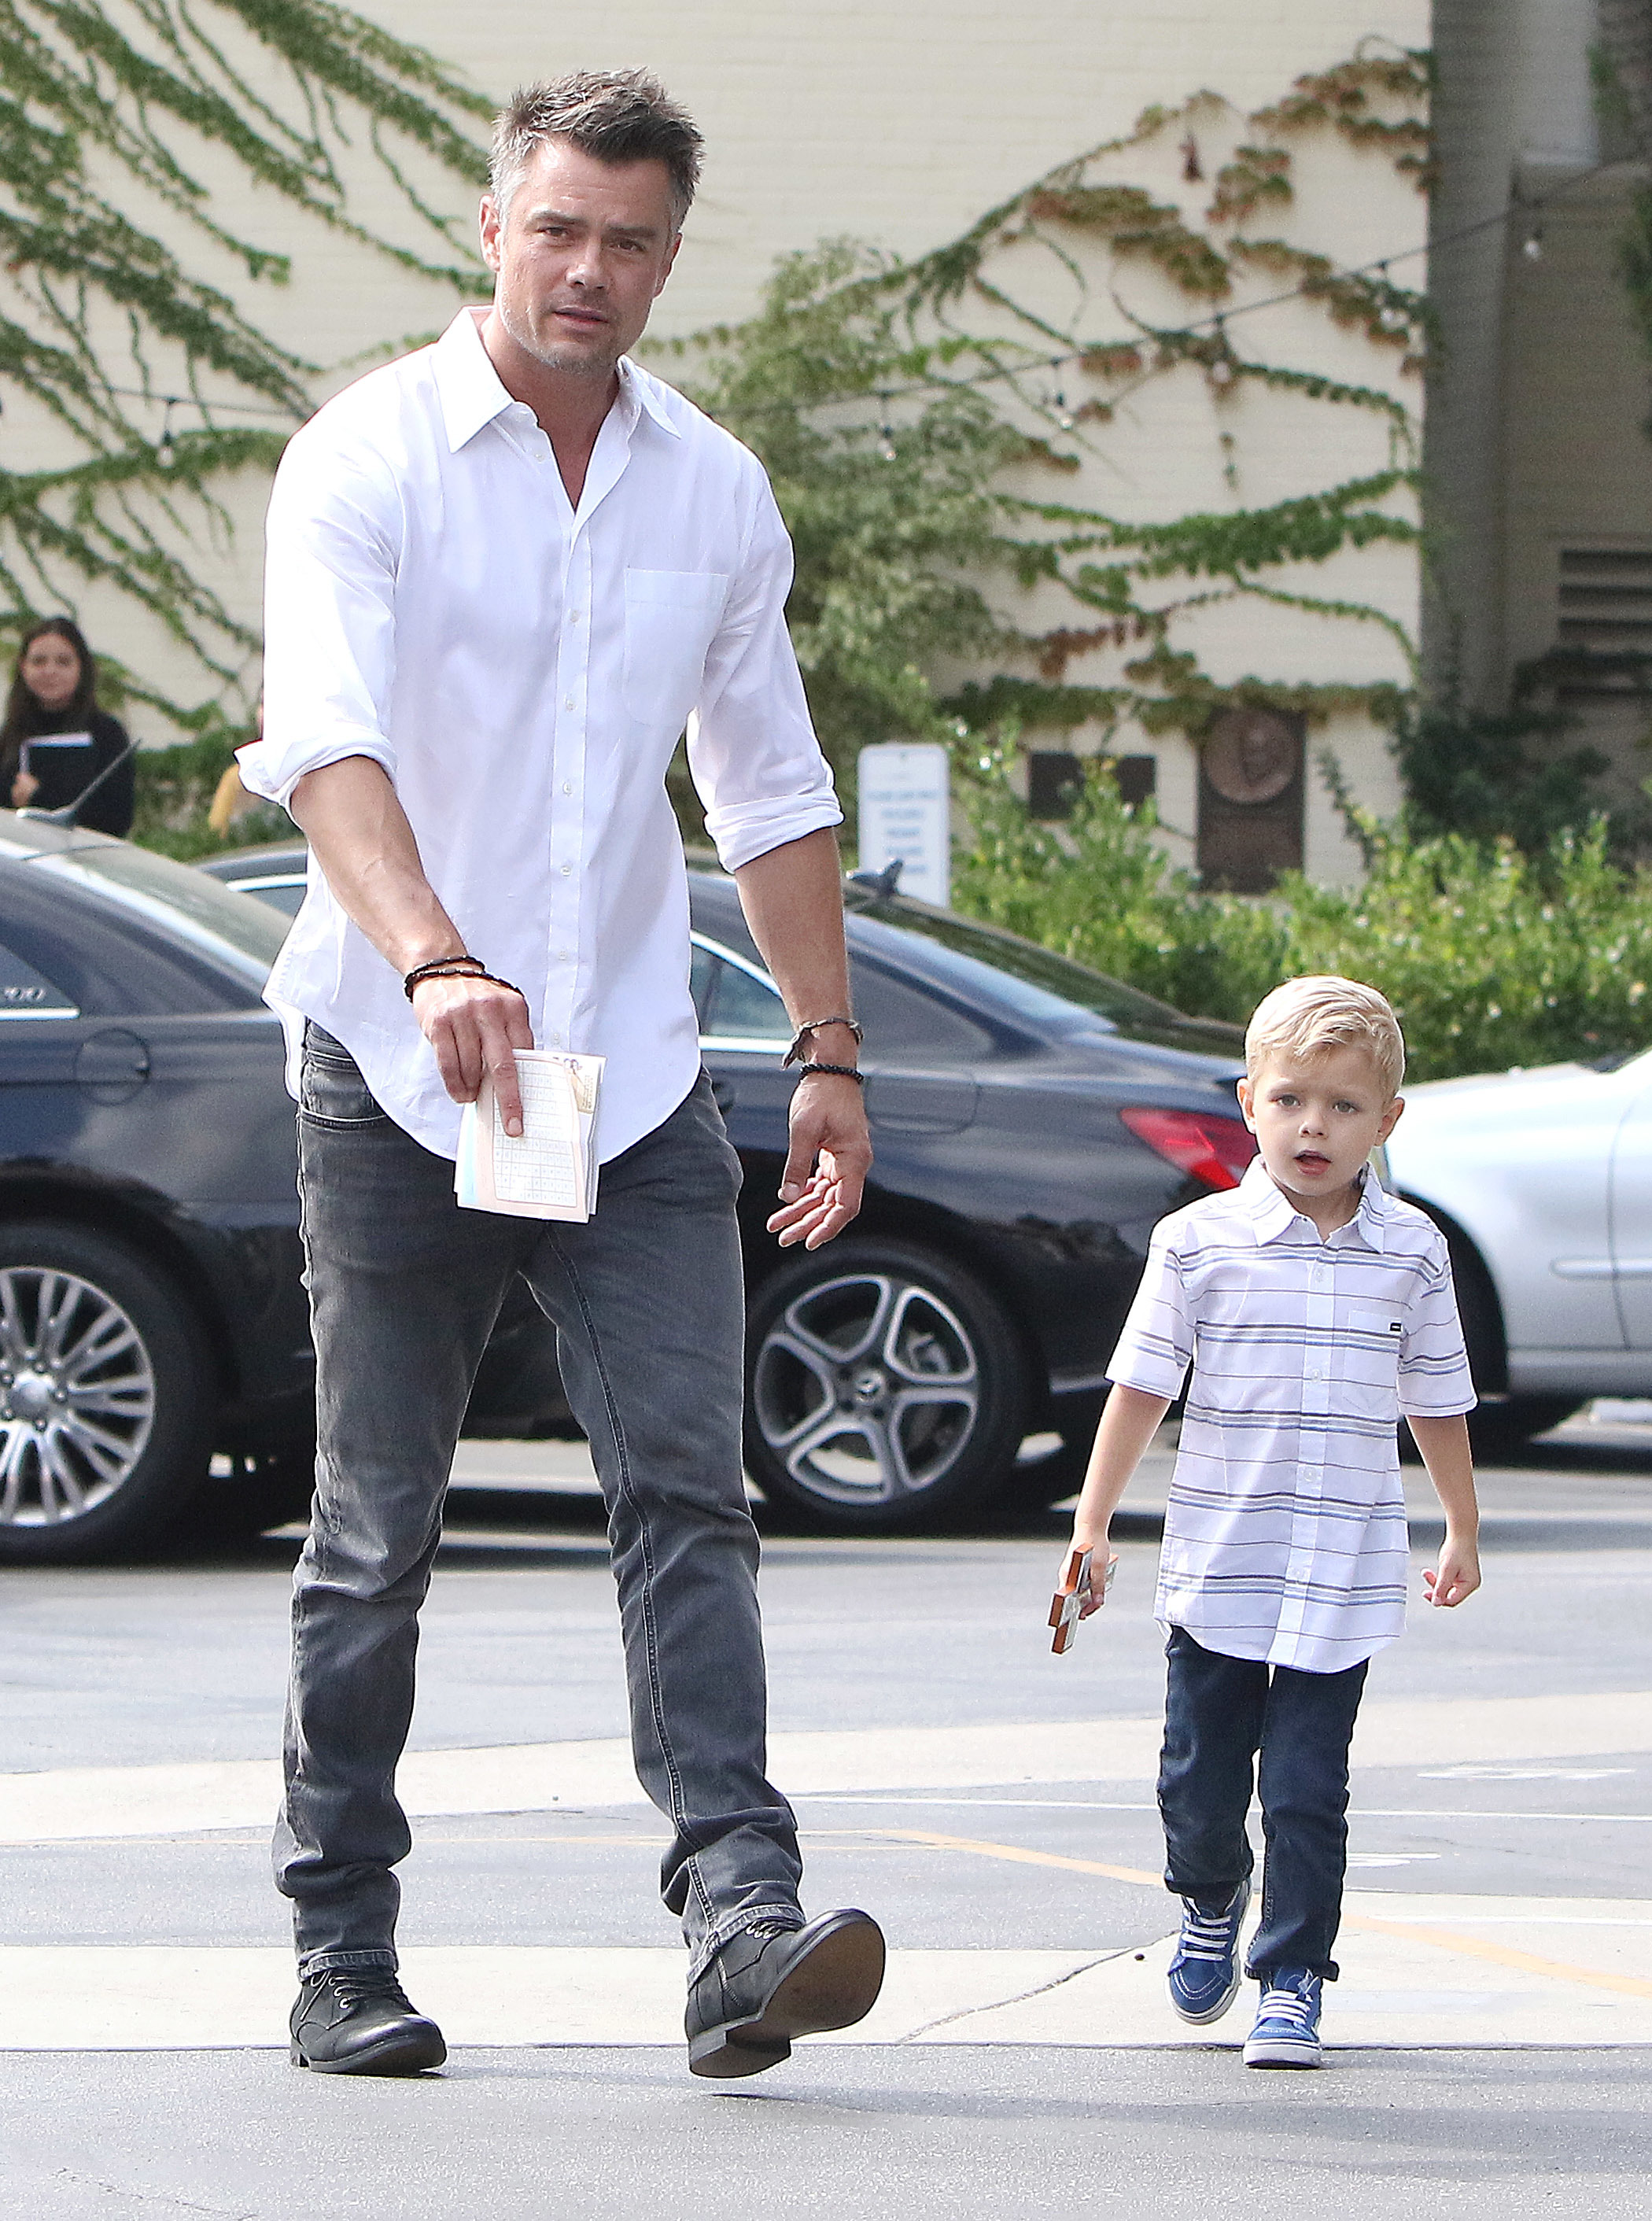 Josh Duhamel and his son, Axl, attend church services in Los Angeles on Oct. 1, 2017.